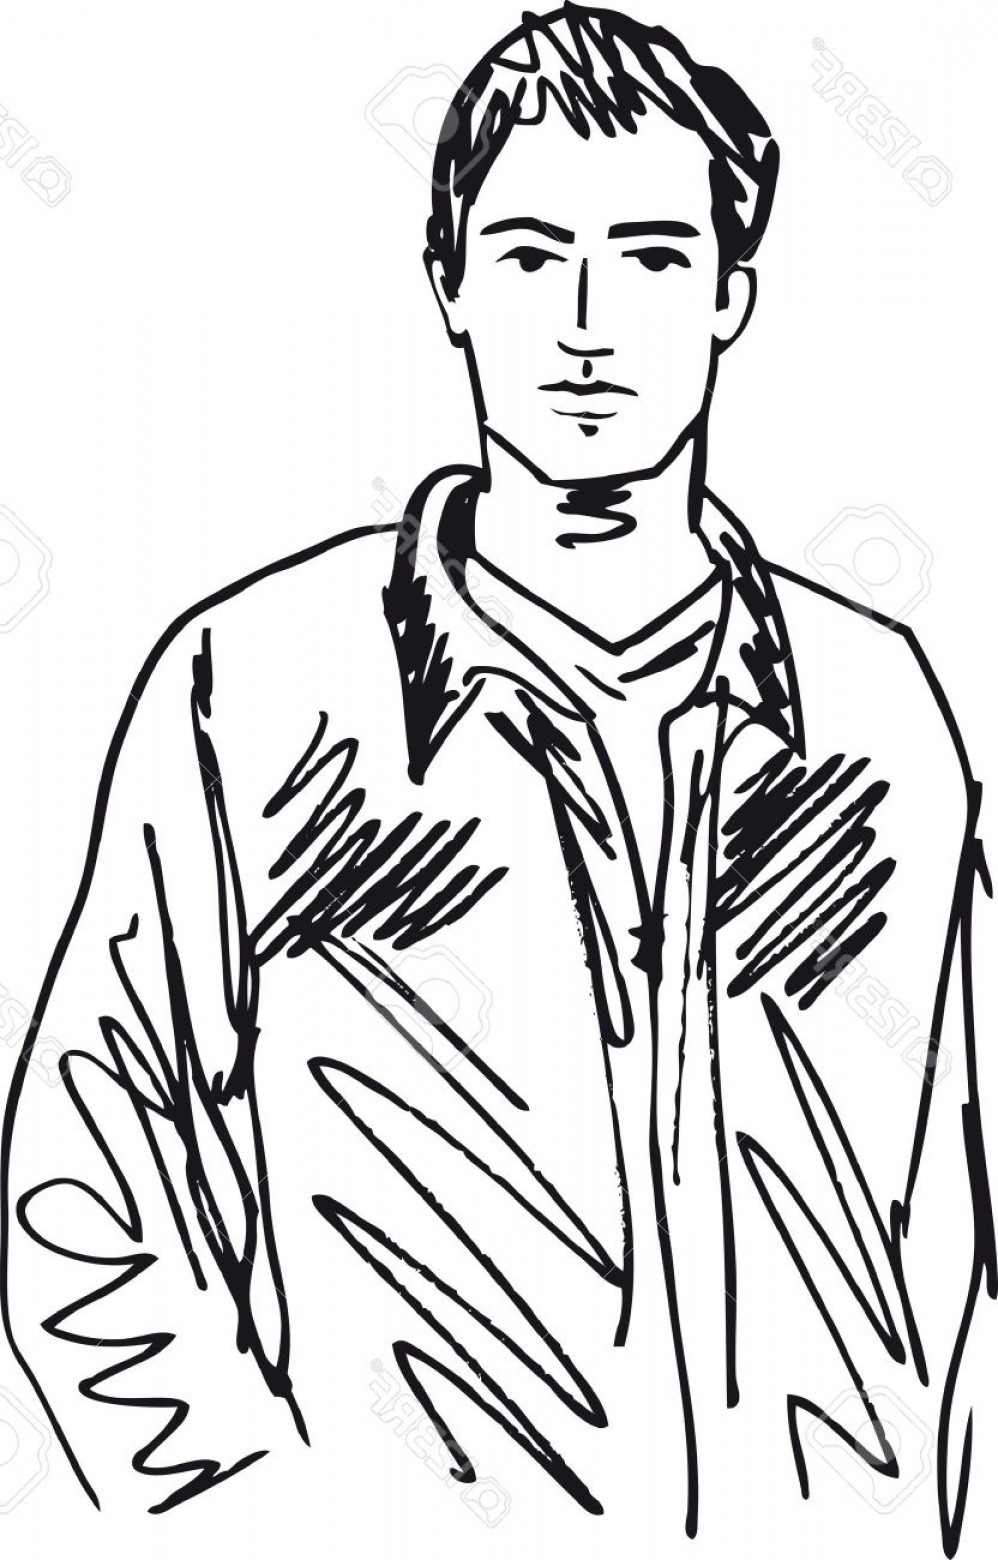 Handsome Man Vector Outline: Photosketch Of Handsome Man Vector Illustration